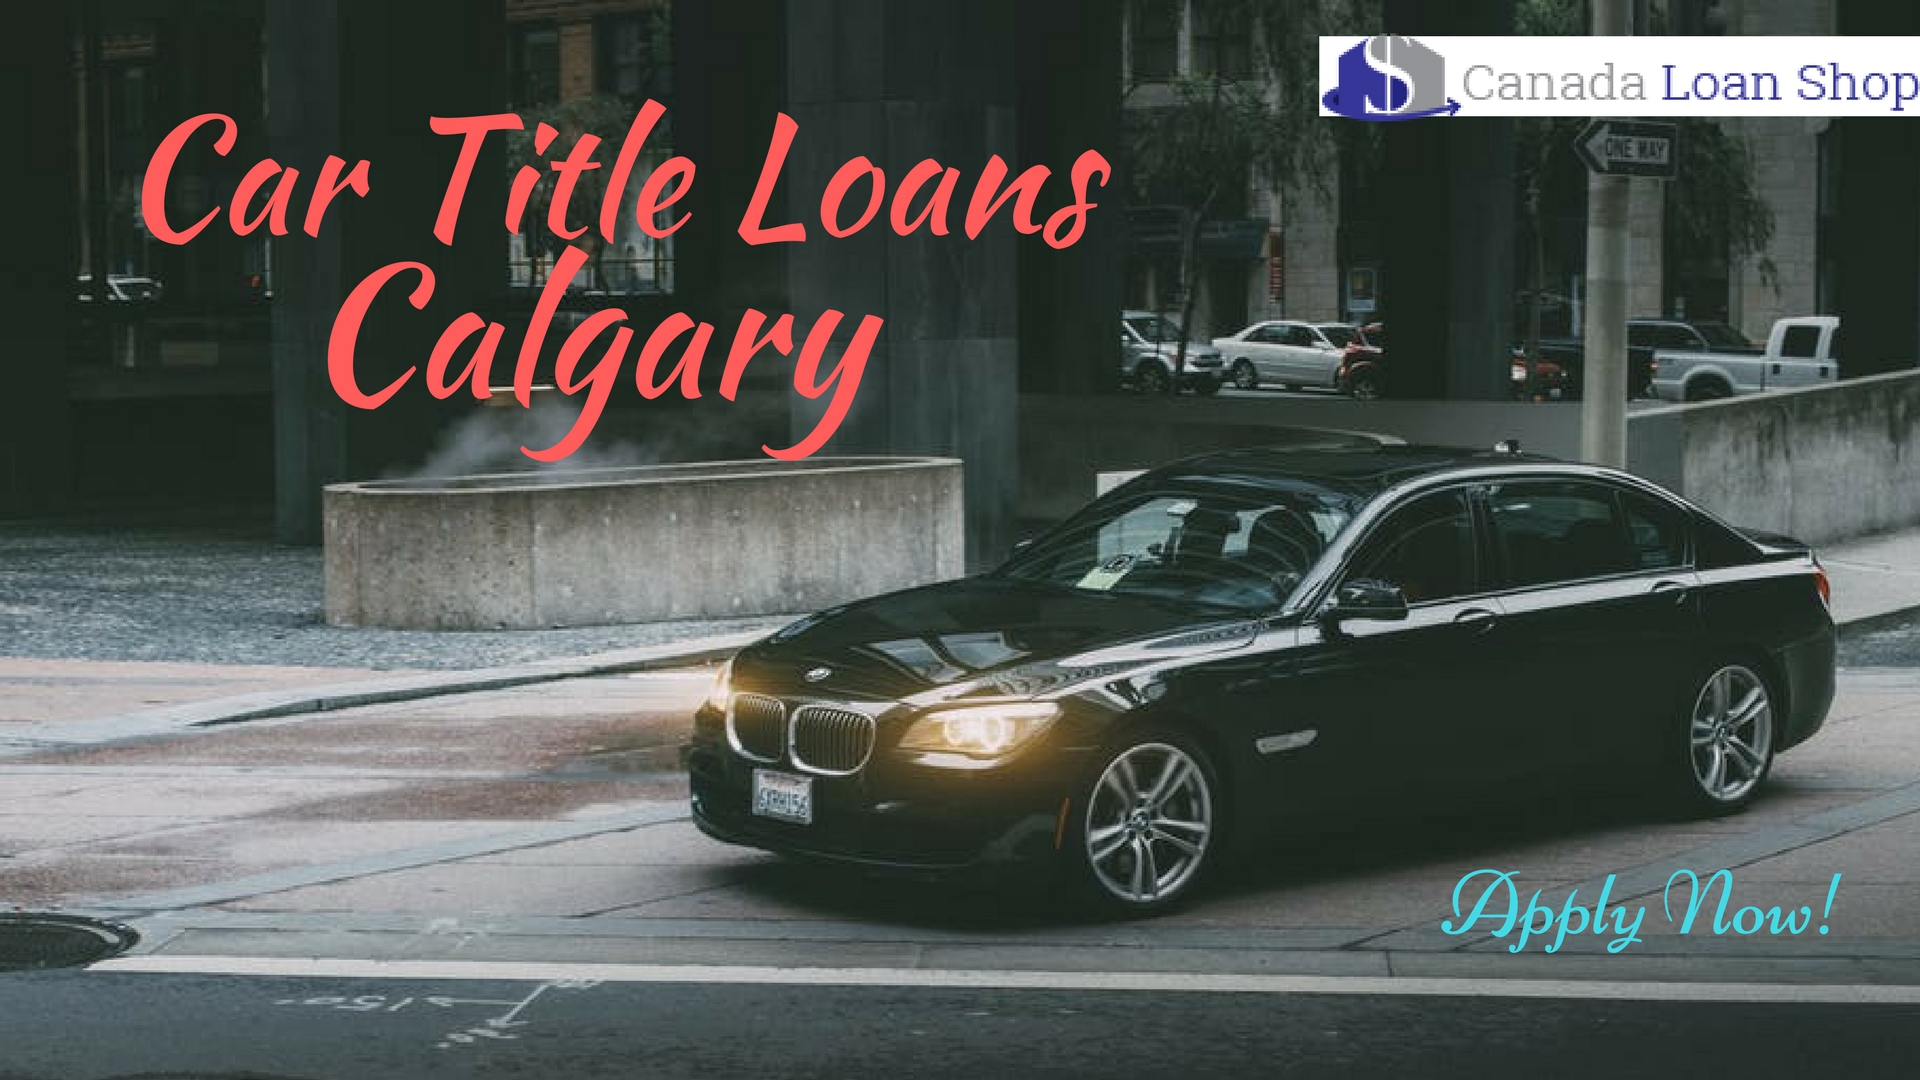 Car Loan Rates Calgary